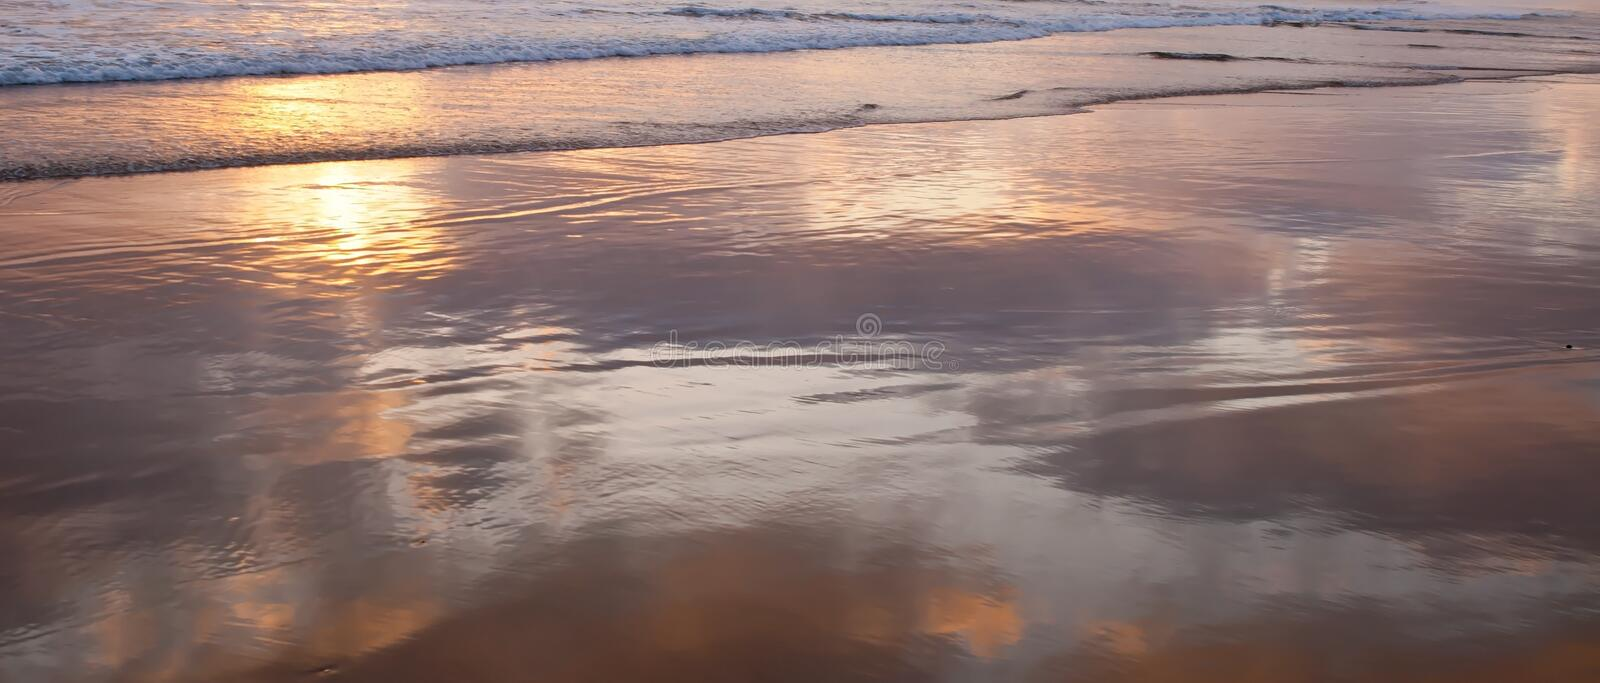 The shallow surf of the Pacific ocean in southern California, USA with the clouds reflecting off the water royalty free stock image